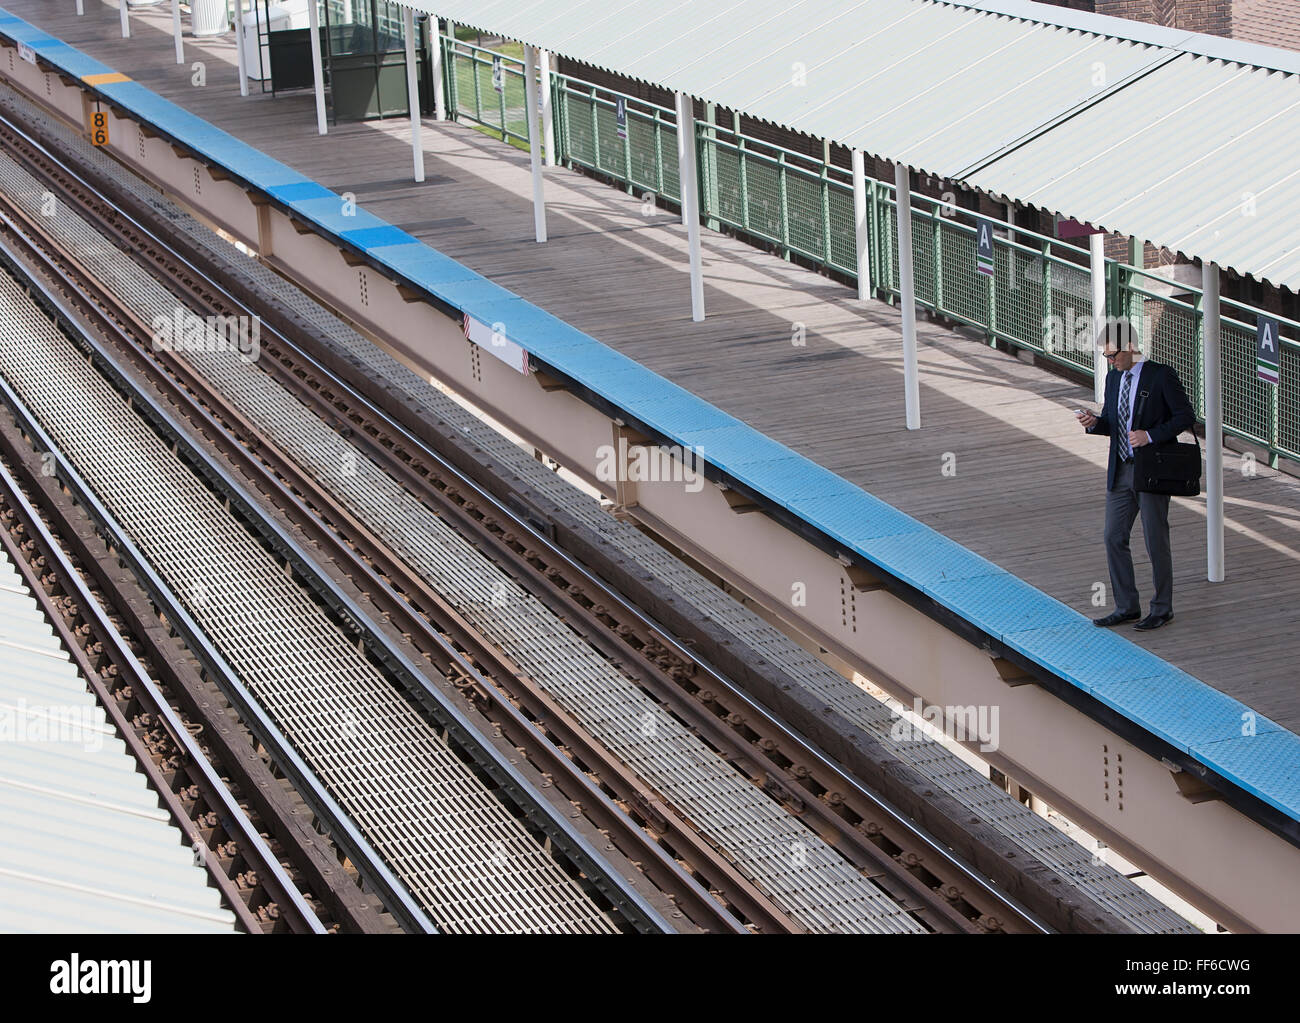 A working day. A view down on a railway station and a man waiting on the platform. - Stock Image